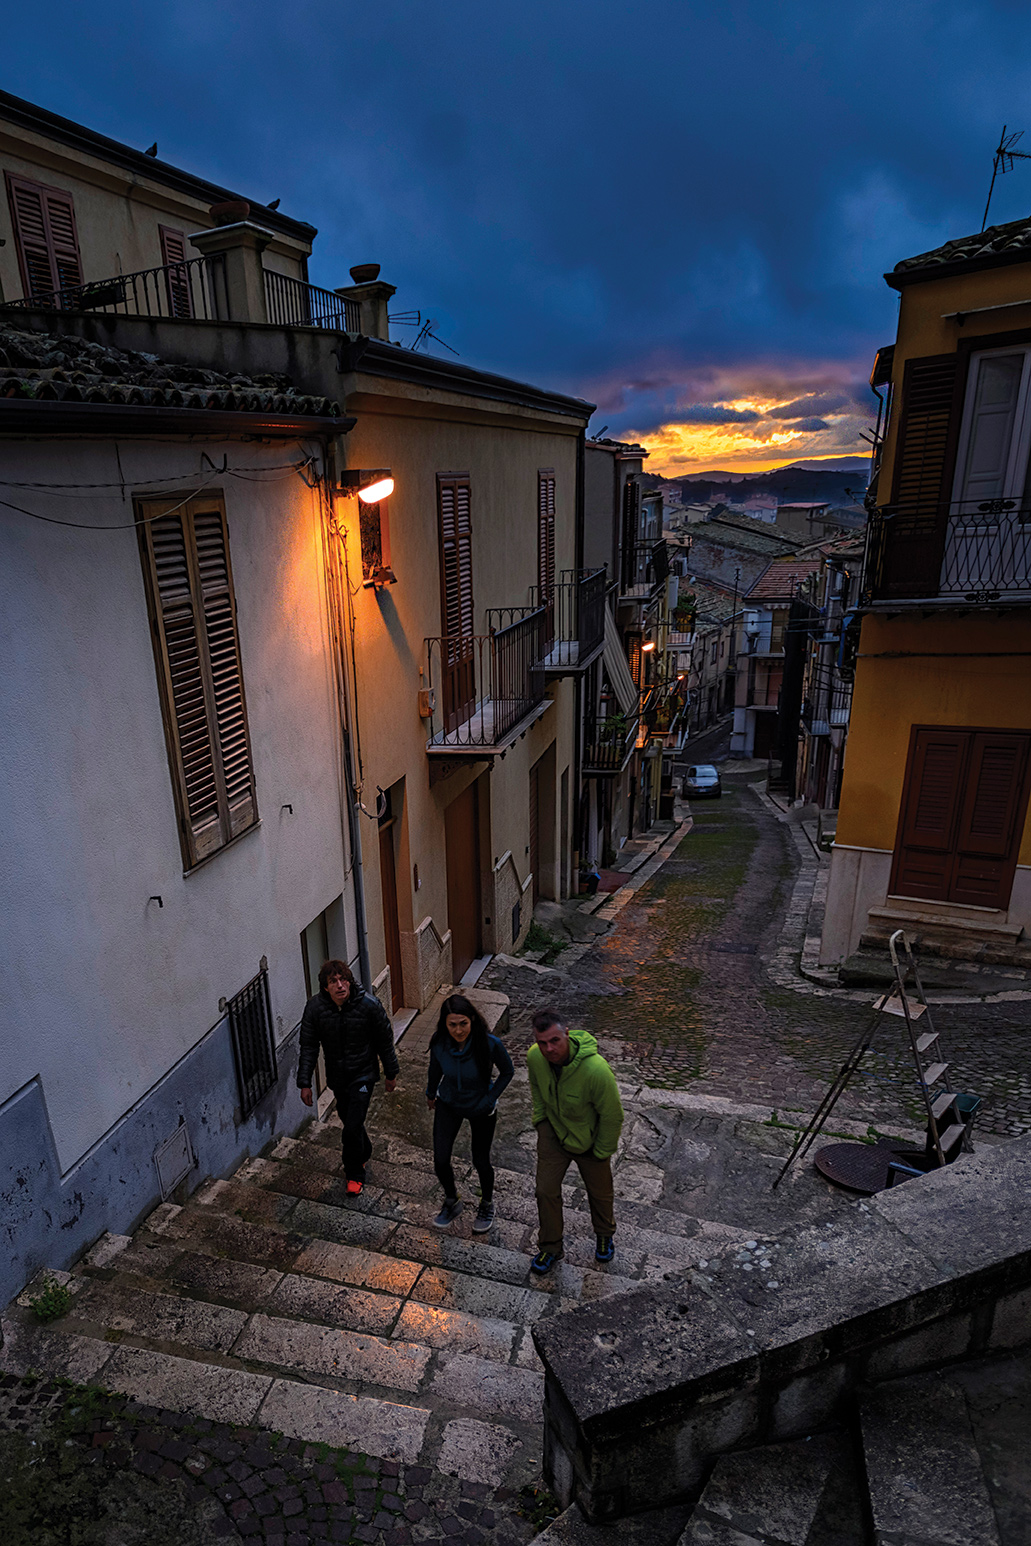 A visit to Corleone, the birthplace of the main character in The Godfather, Marlon Brando, was essential to the trip: romantic streets, incredible food and great cappucinos. Photo: Jeff Rueppel.